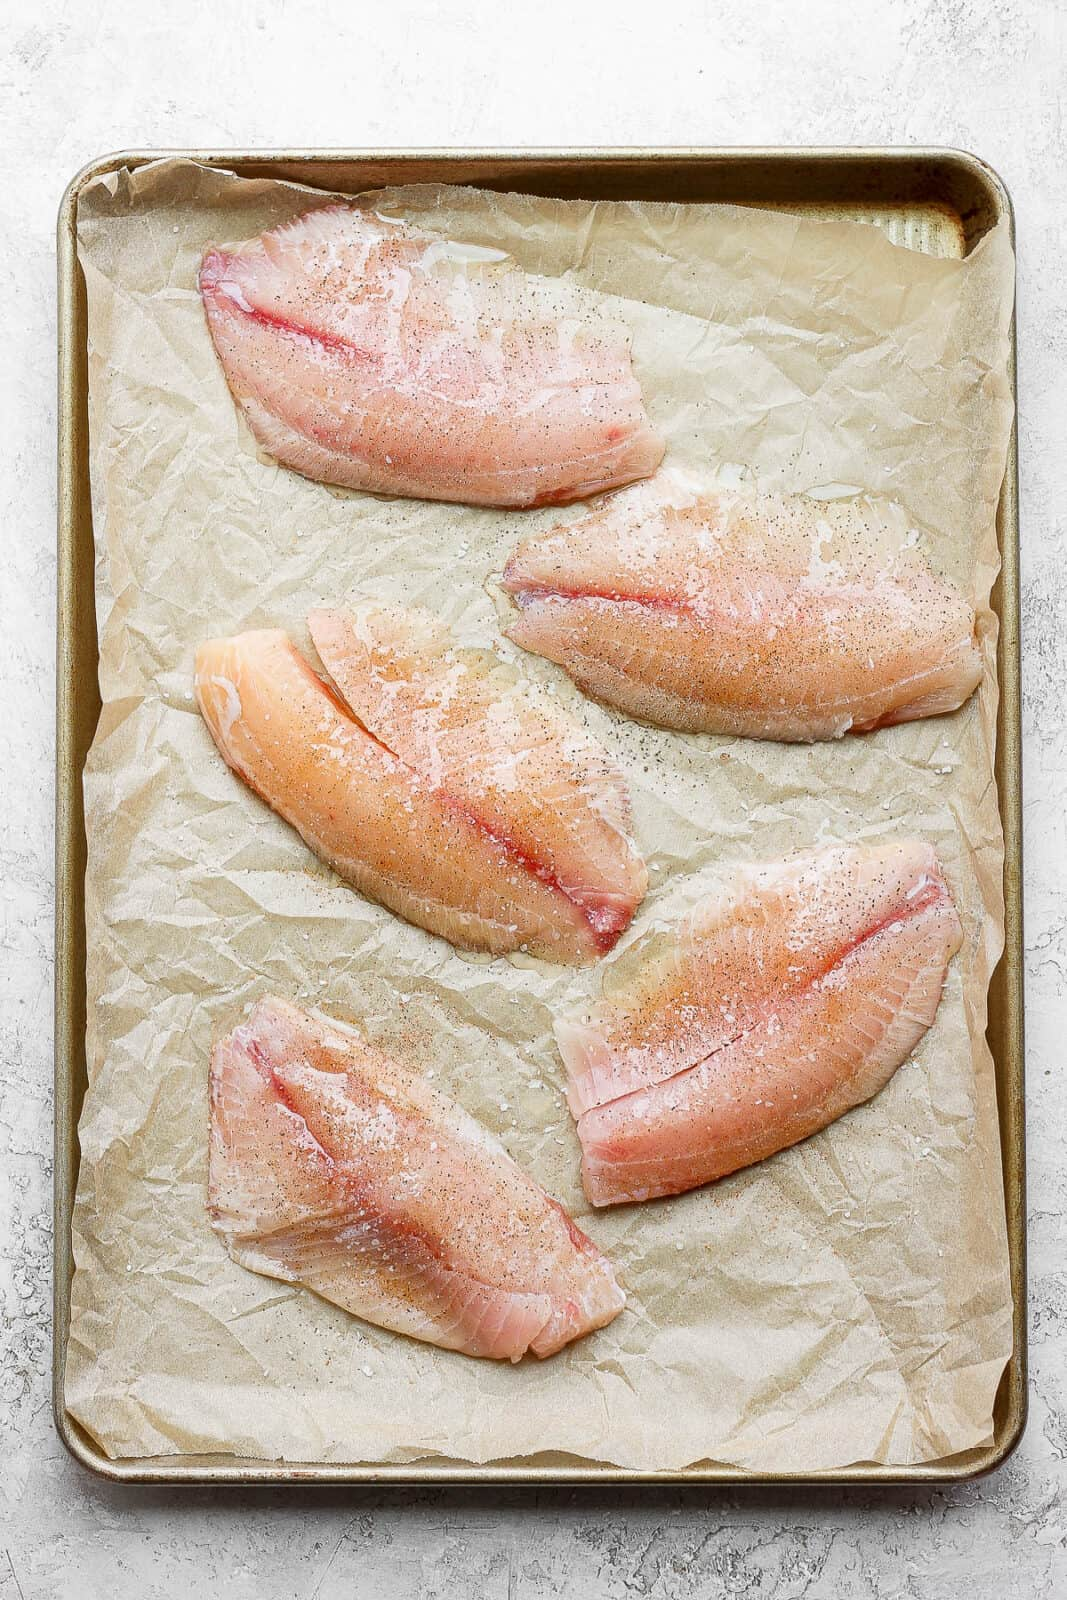 Tilapia on a parchment-lined baking sheet.